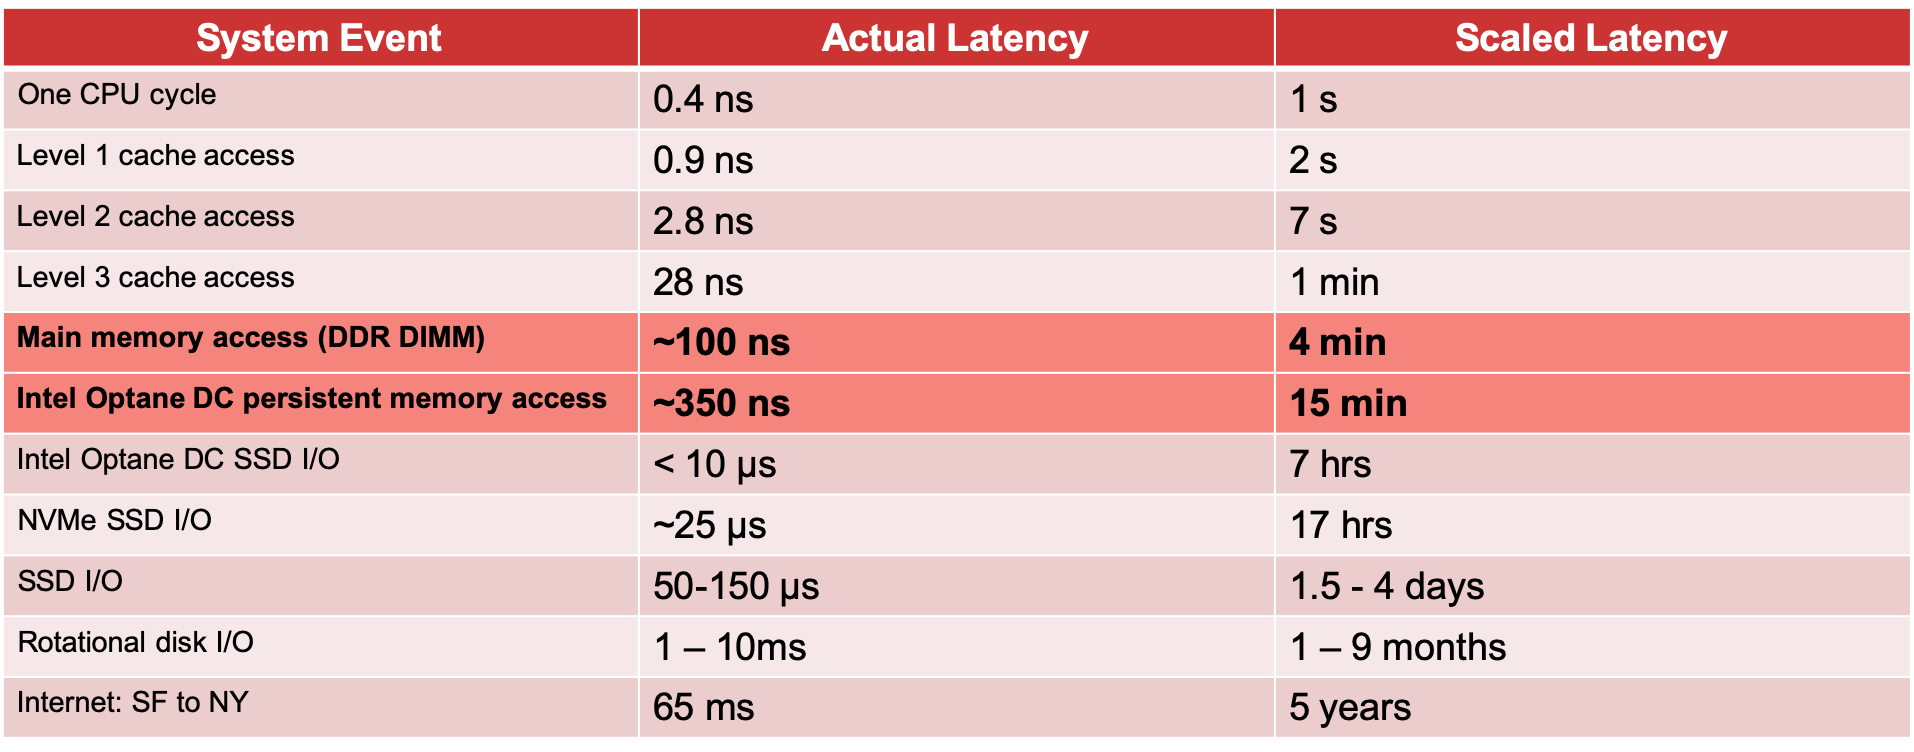 Computer Latency at Human Scale